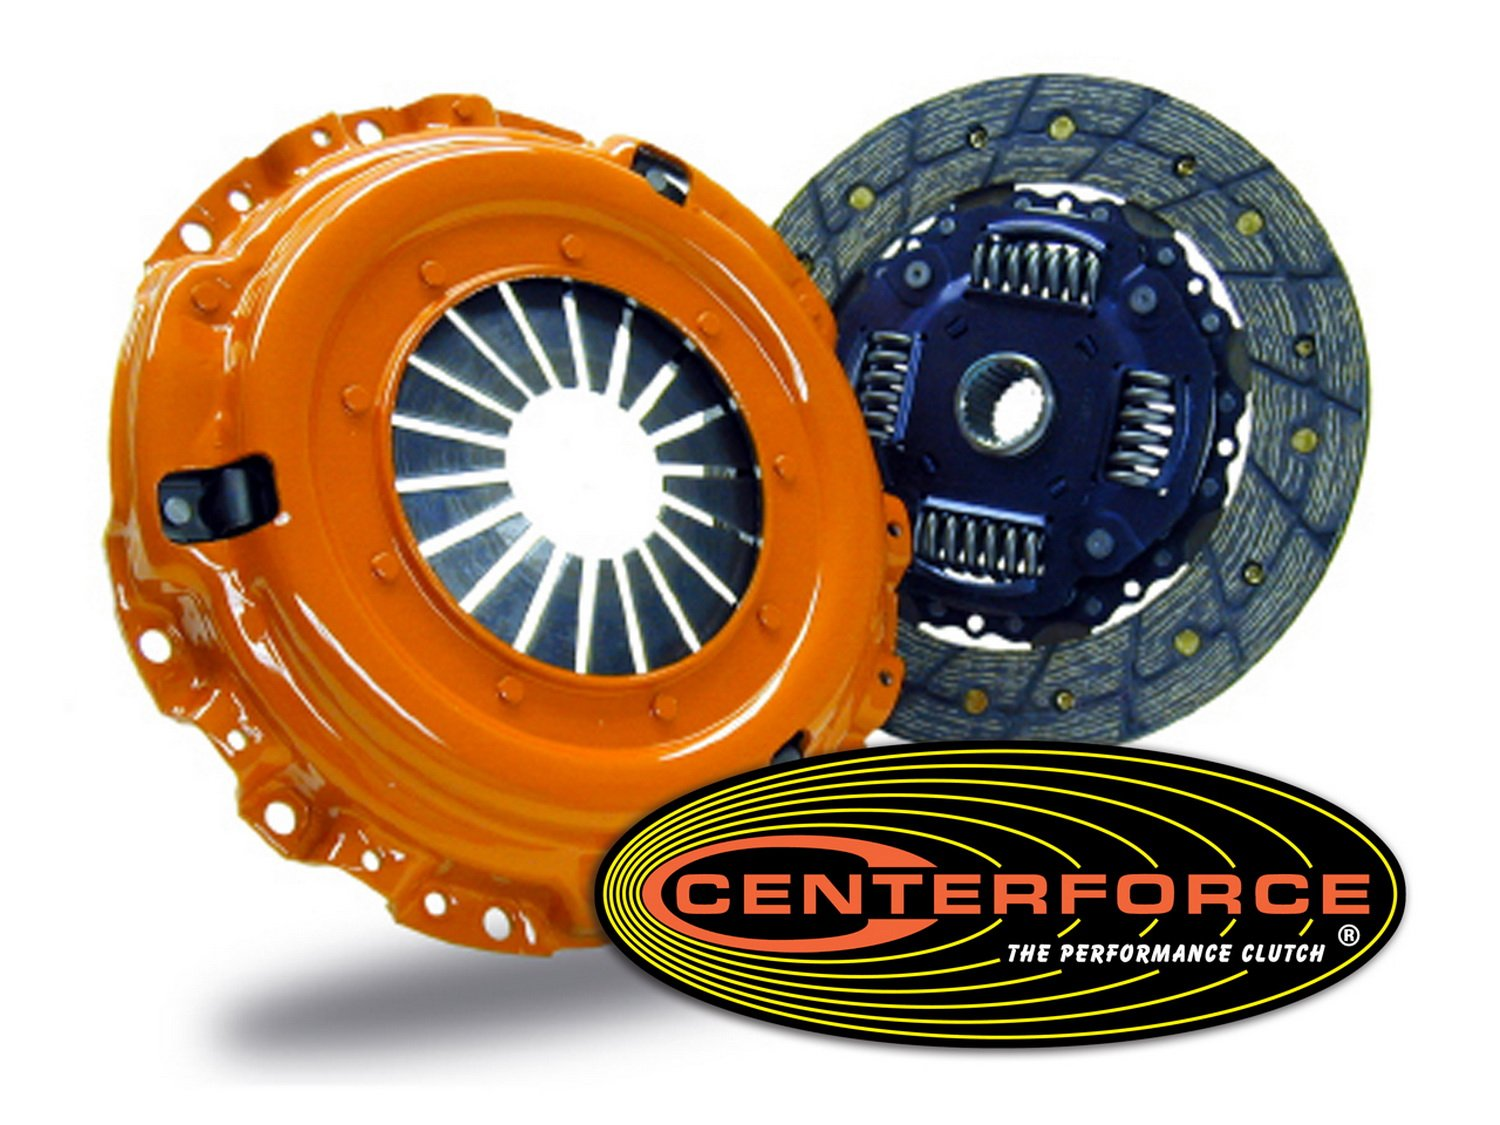 Centerforce CFT900800 Centerforce II Clutch Pressure Plate and Disc by Centerforce